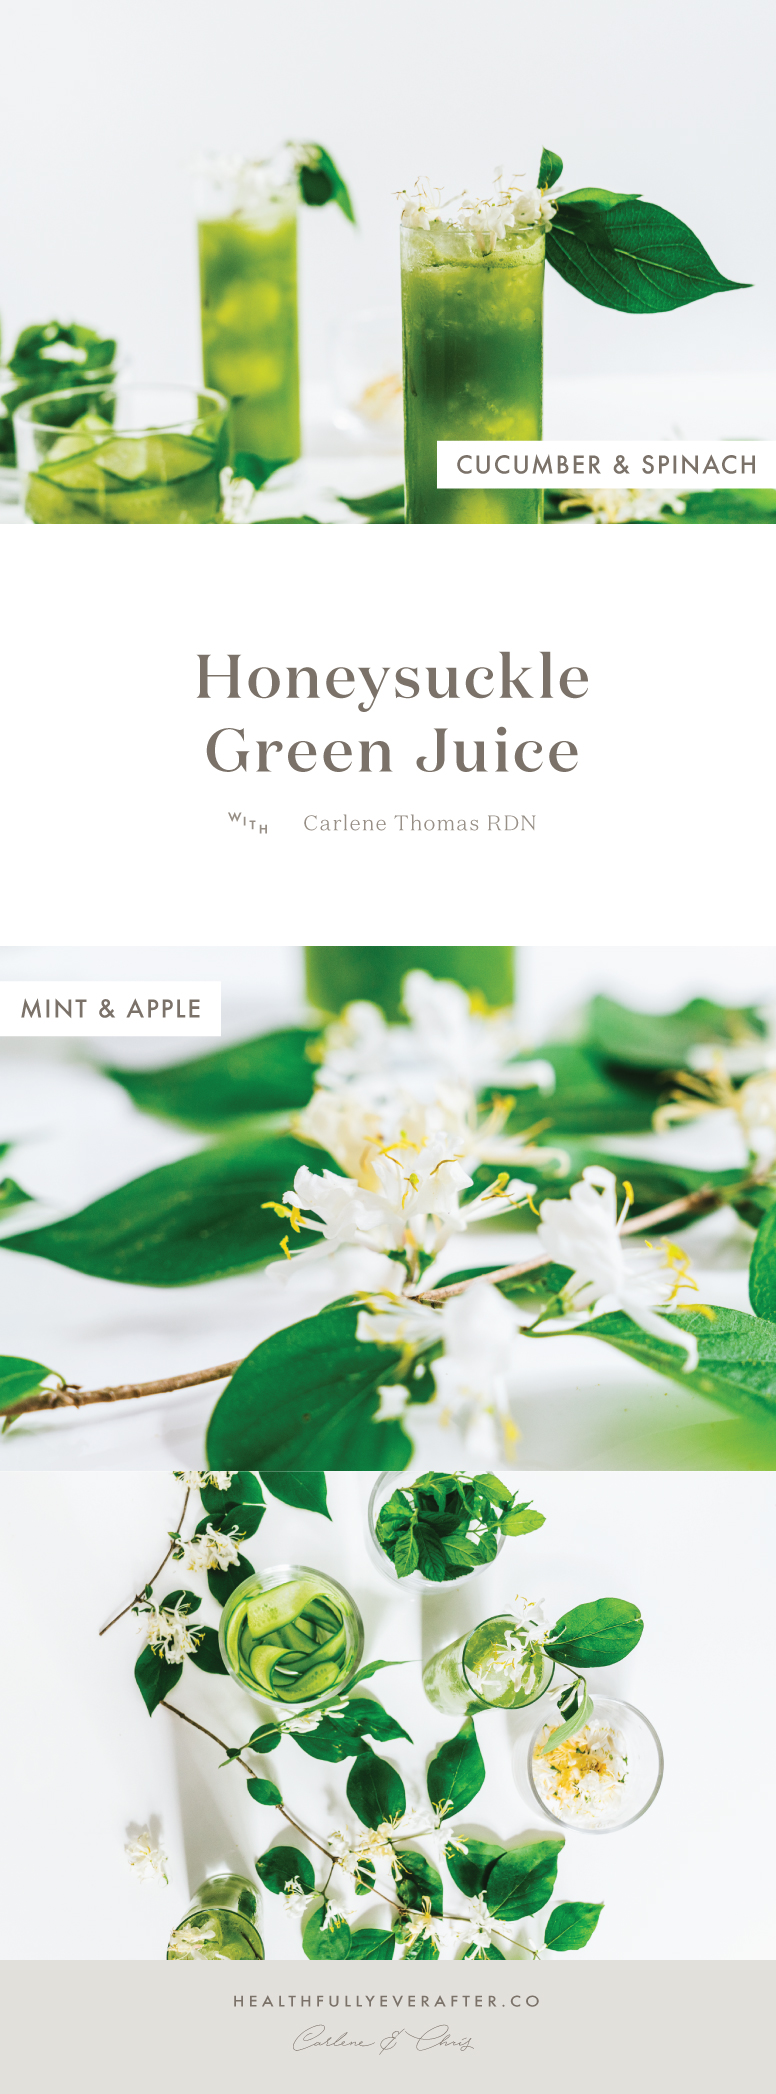 honeysuckle green juice